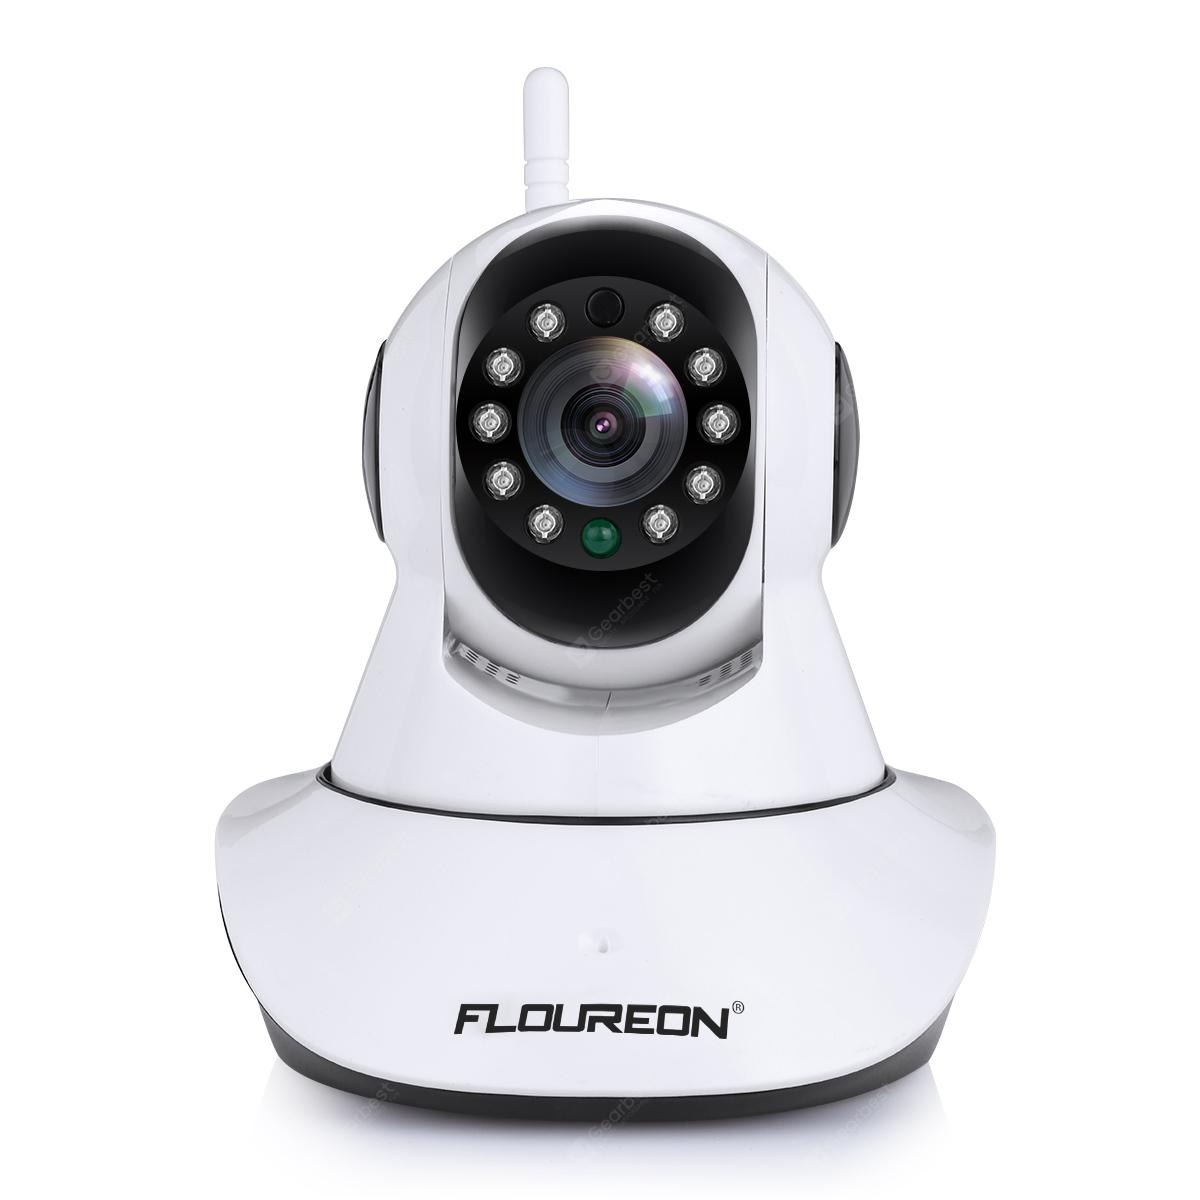 FLOUREON 720P Wifi 1.0 Megapixel Wireless Pan/Tile  CCTV Security IP Camera EU